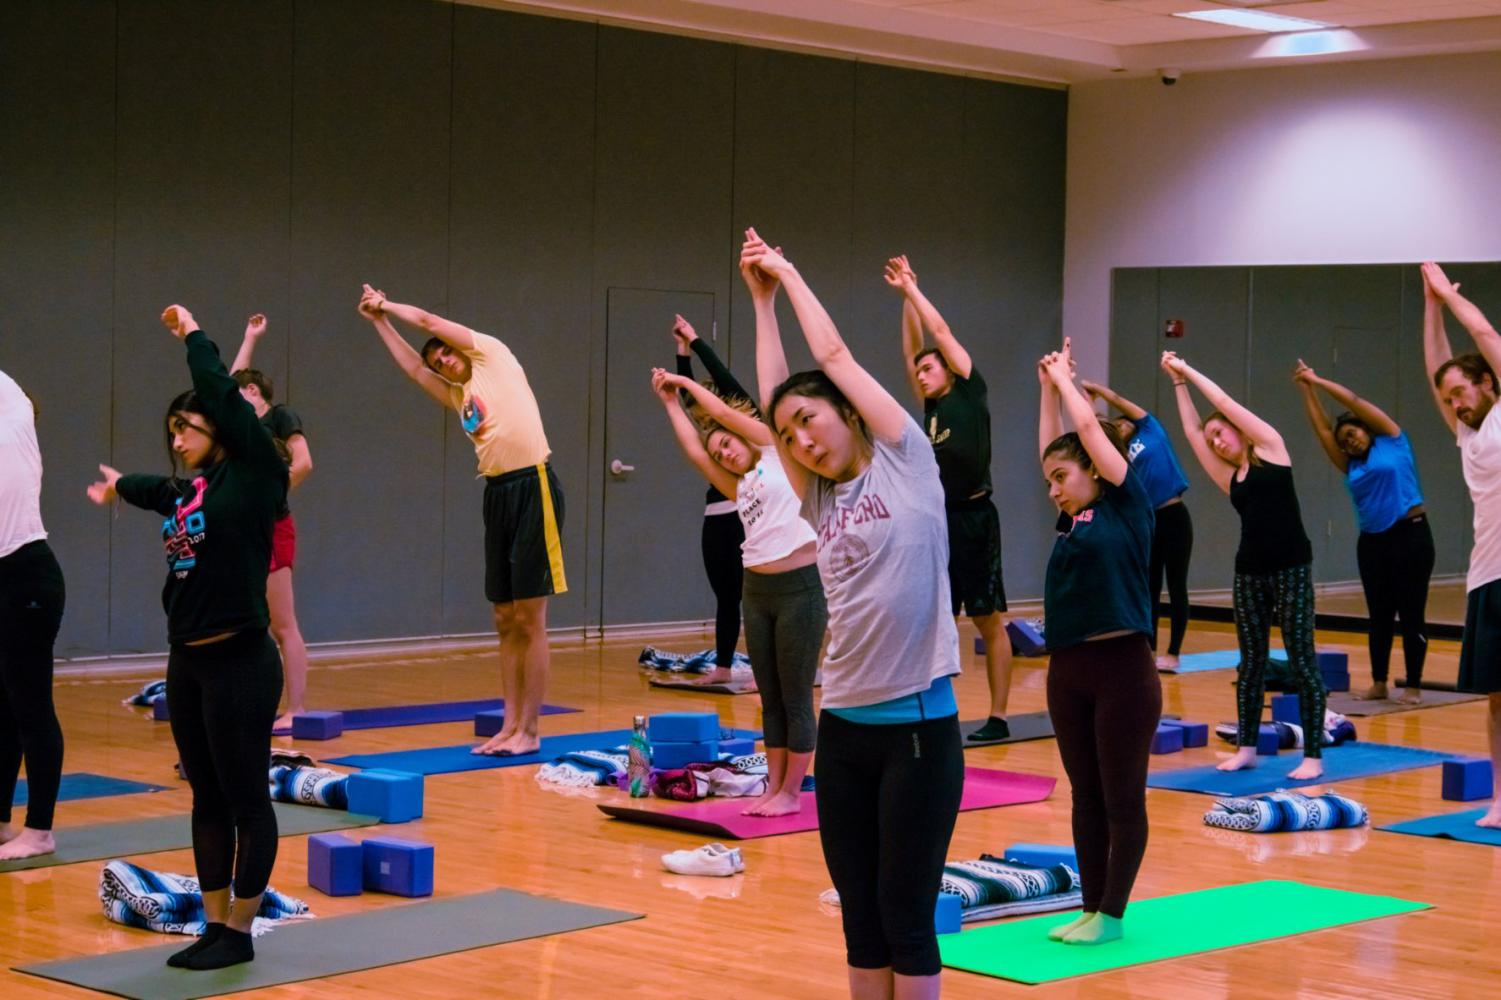 Students at the Campus Recreation Center East learn why self-care is important to their well-being and health through a two-hour yoga workshop Friday. Yoga is one of the five workshop themes in Campus Recreation Self-Care Workshop series.